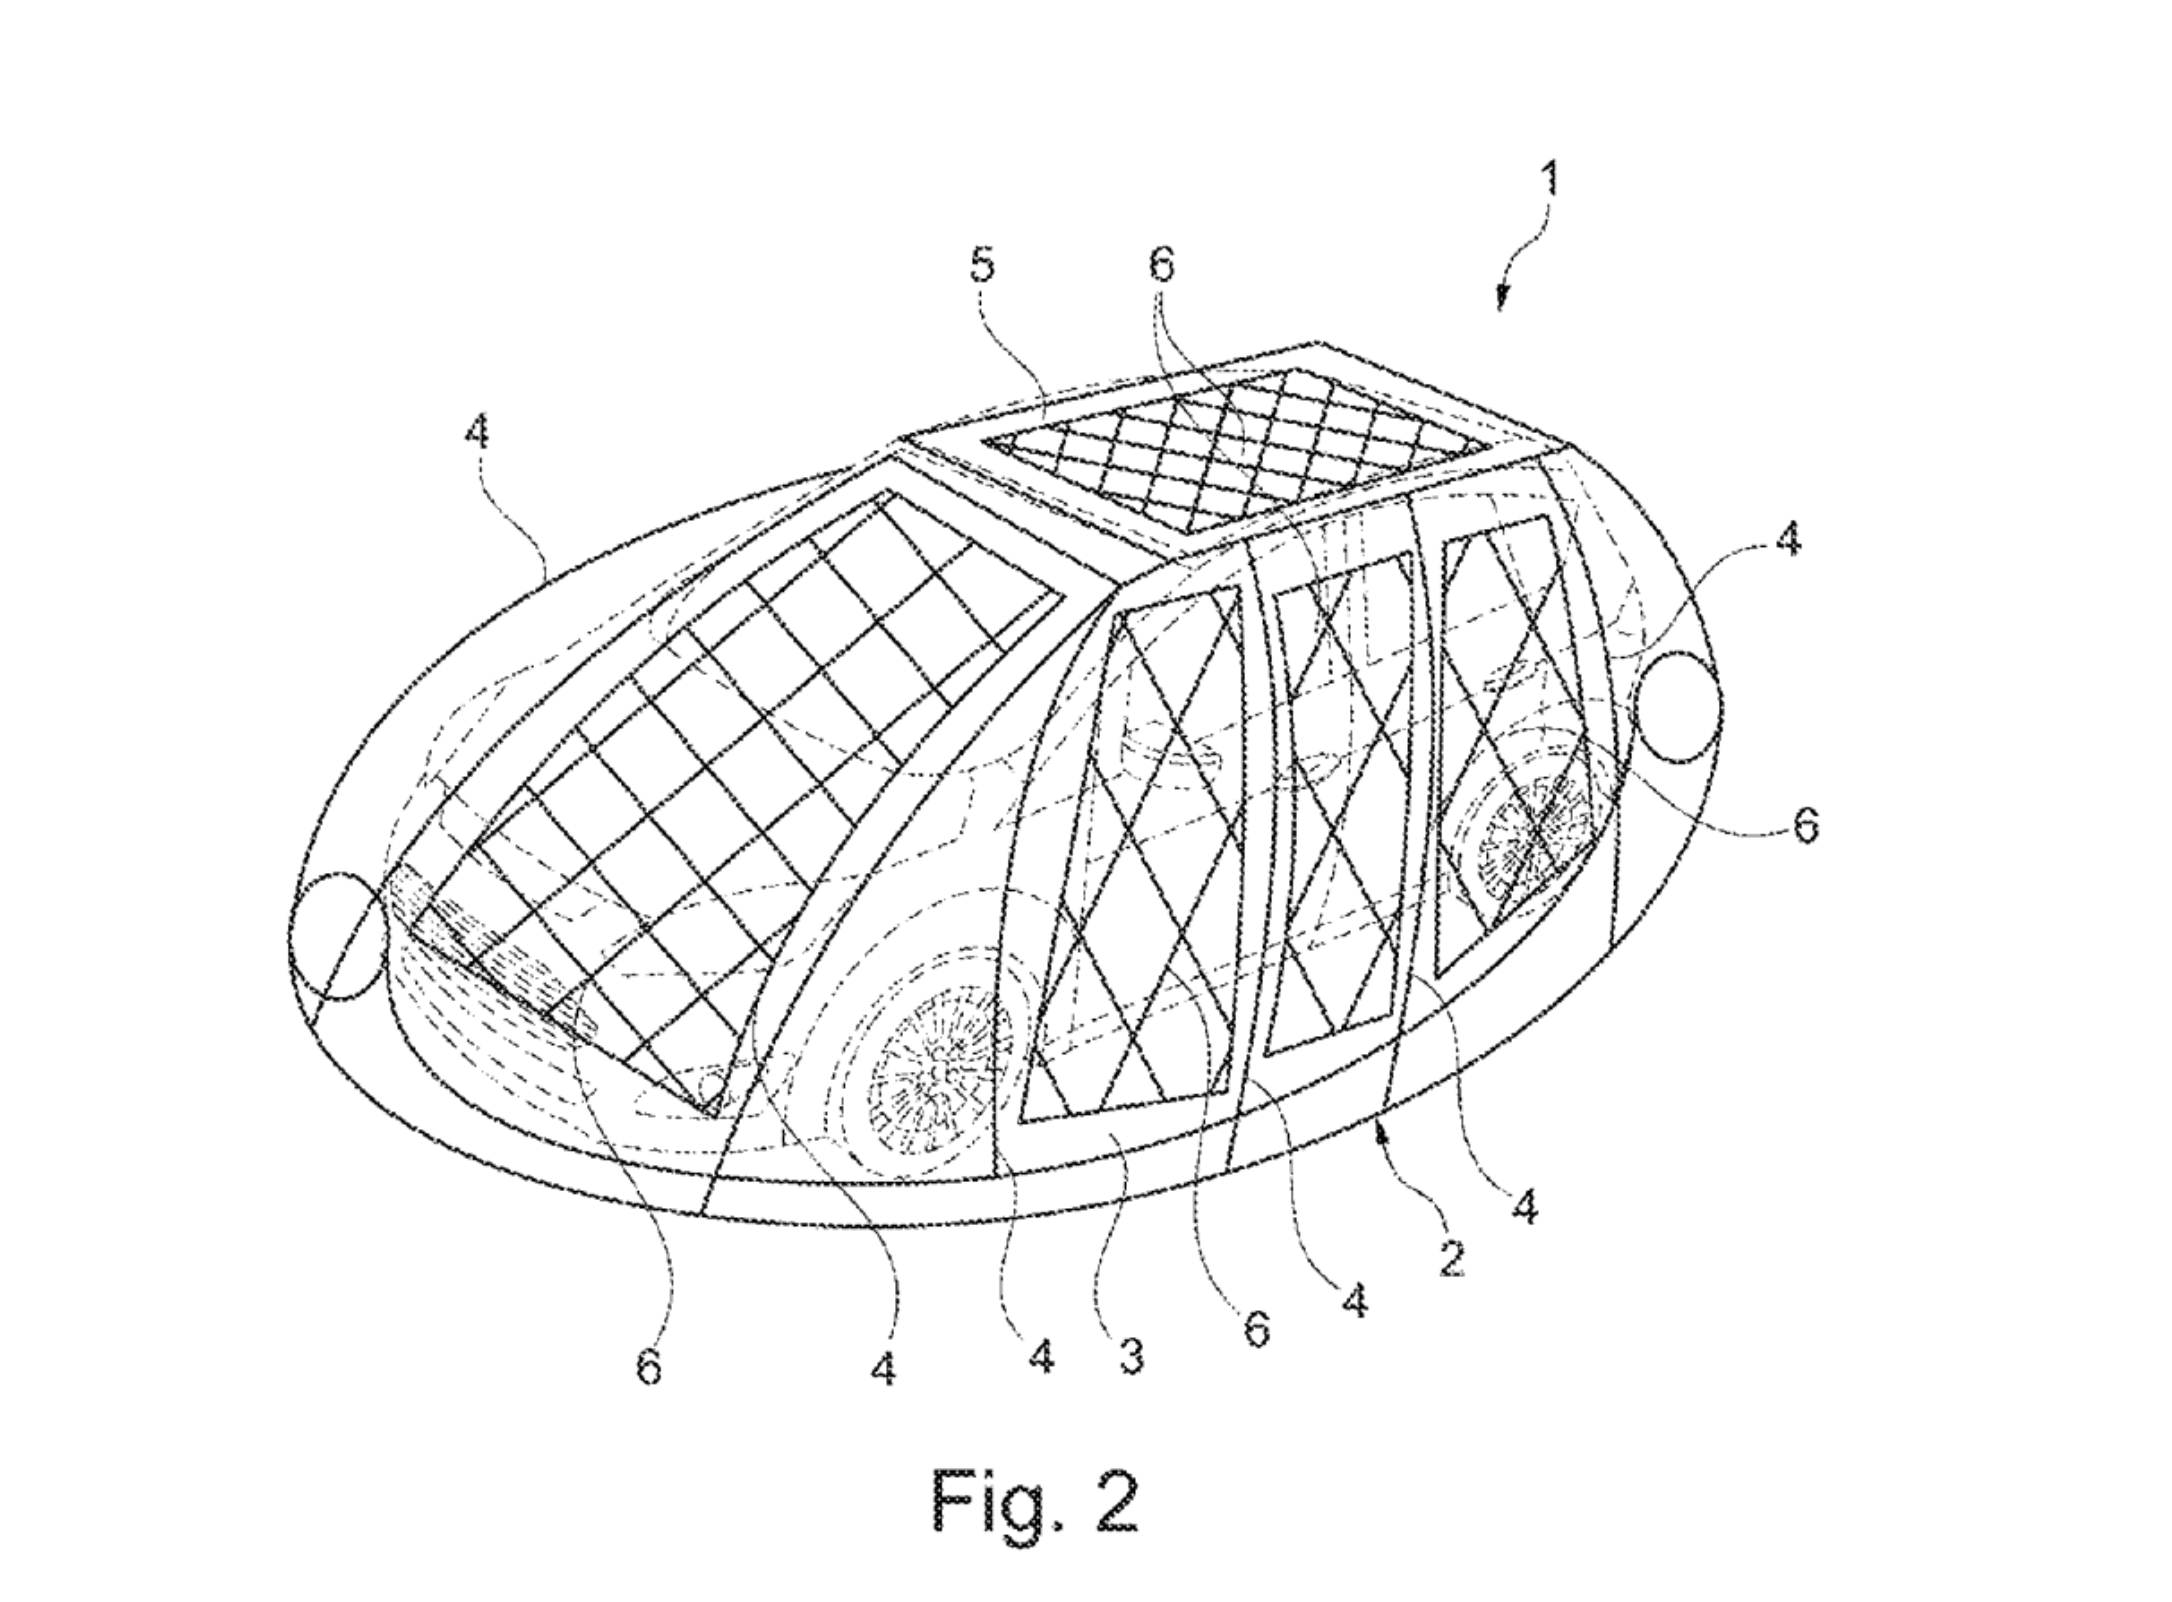 Ford Patents Extendable Solar Panel Cocoon for EV Charging